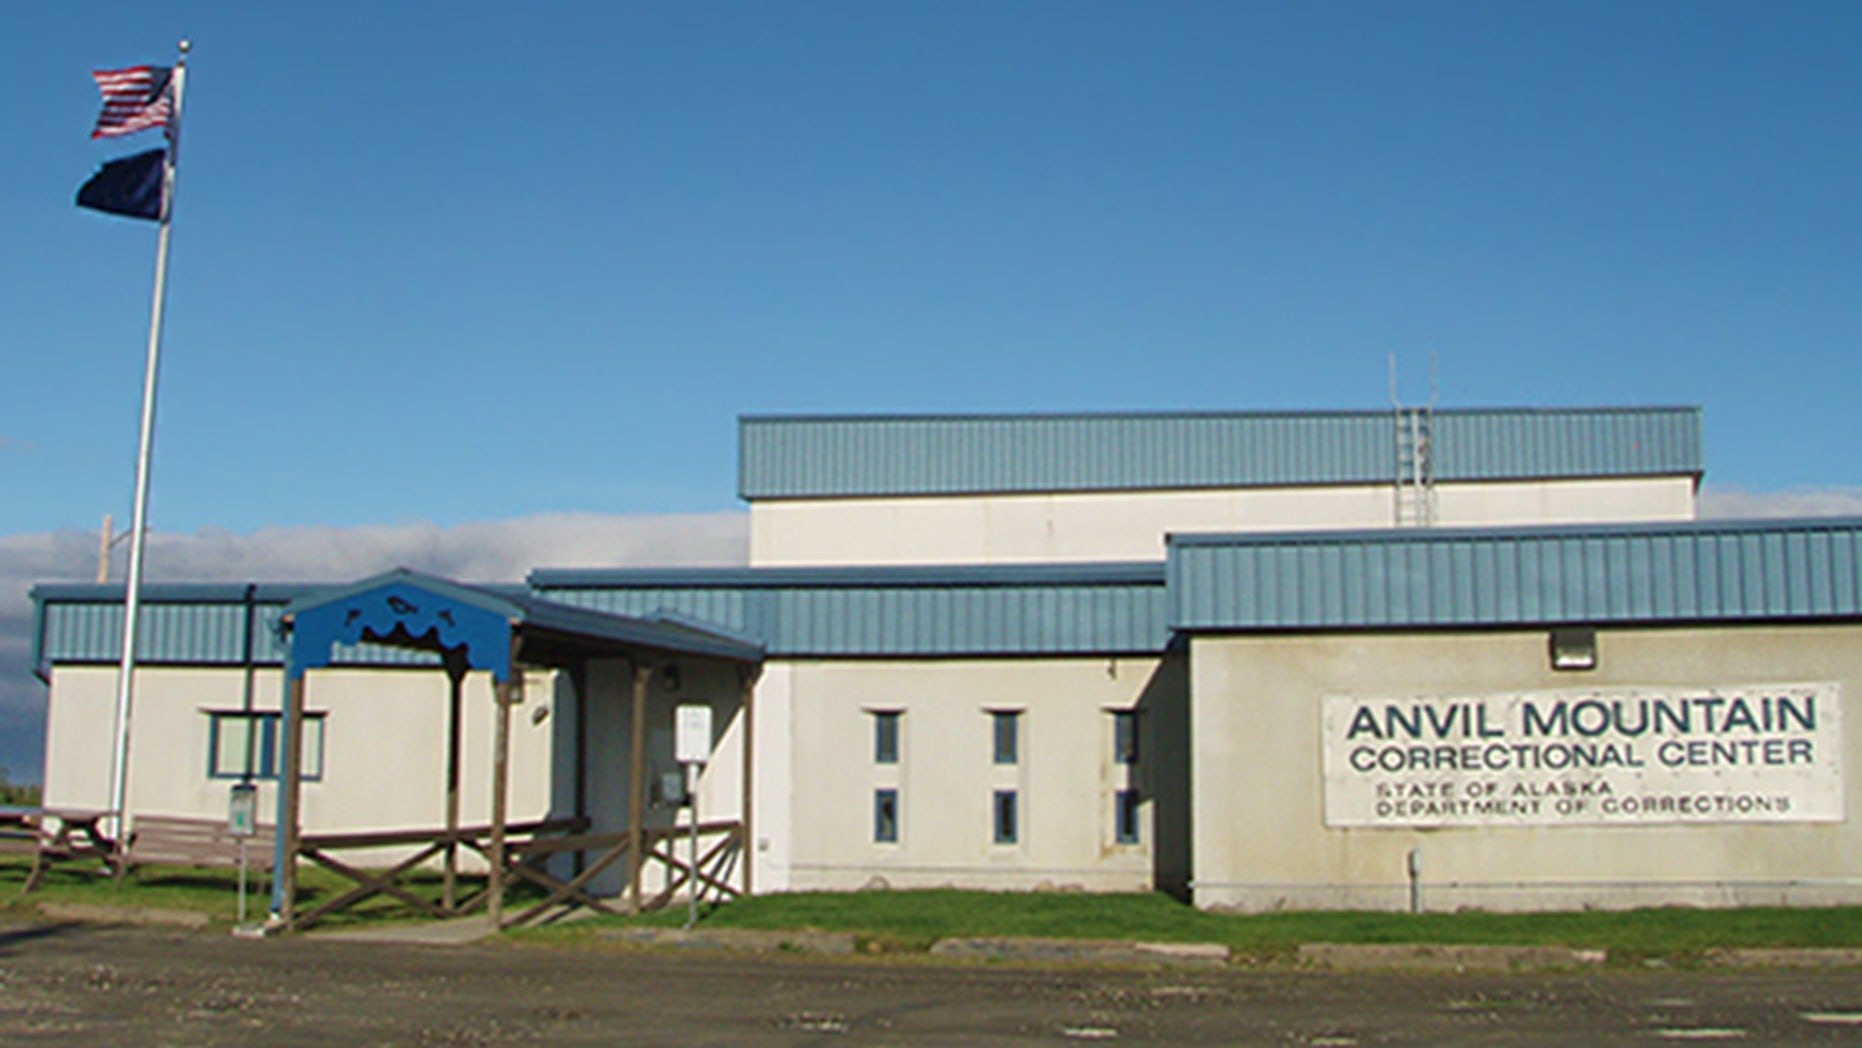 Julia Haworth and Austin Matthias are being held at the Anvil Mountain Correctional Center in Nome.